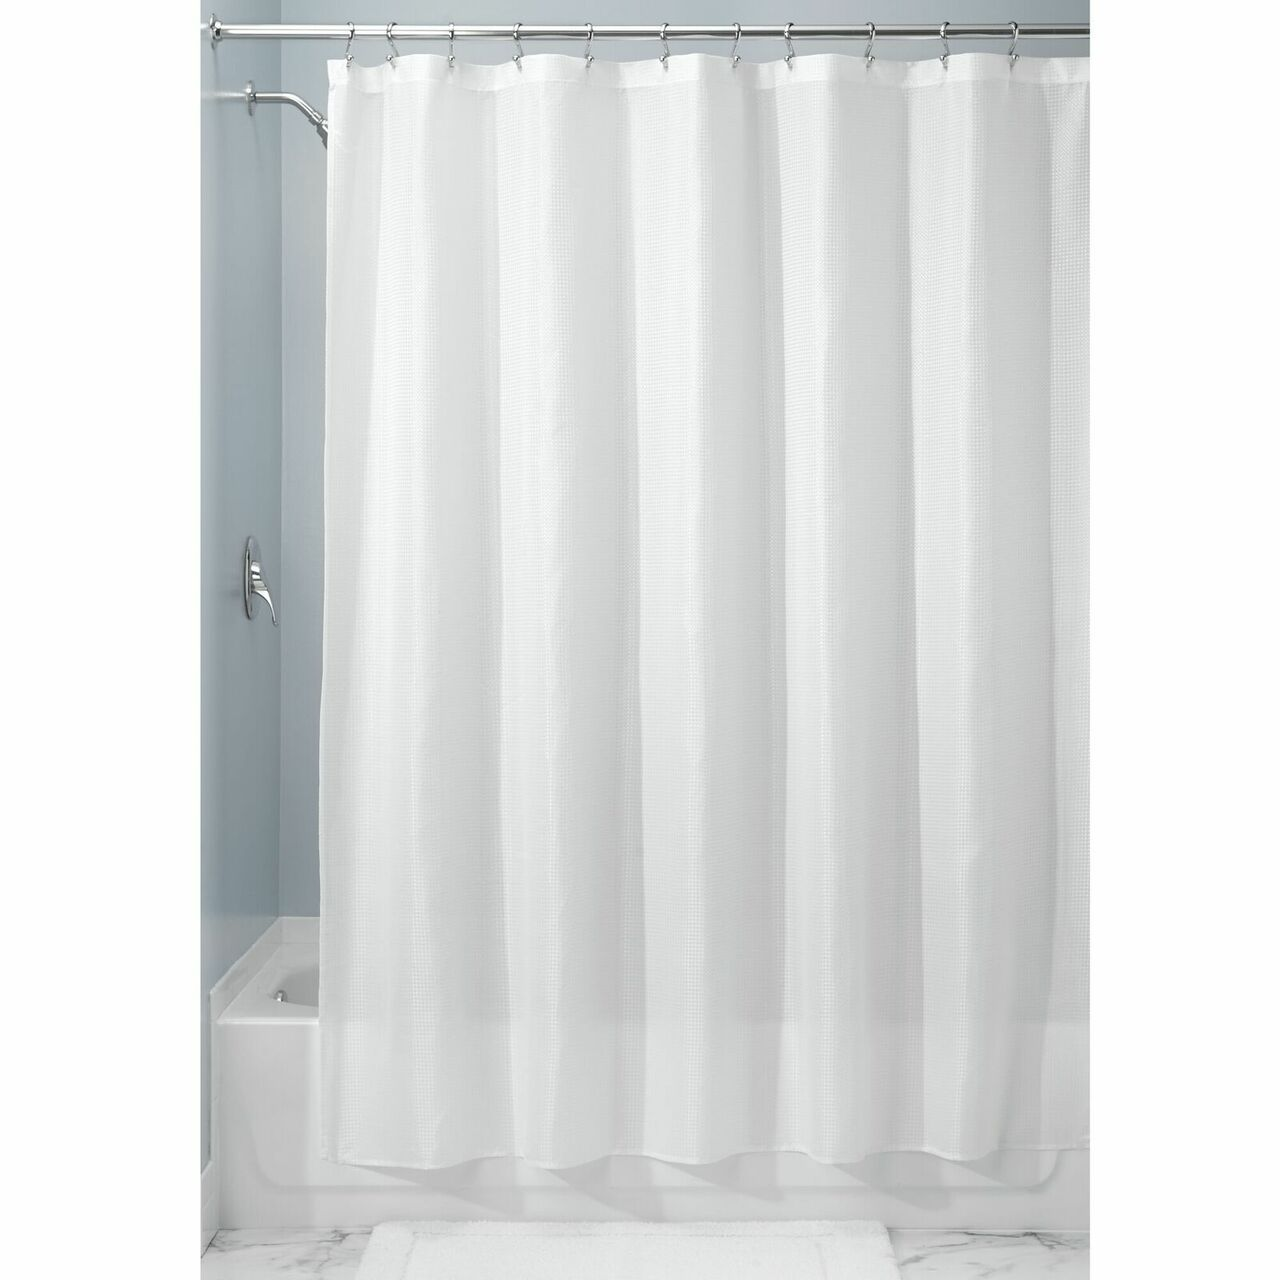 X Wide Waffle Weave Fabric Shower Curtain 108 X 72 White Fabric Shower Curtains Hotel Shower Curtain Shower Curtain 108 x 72 shower curtains